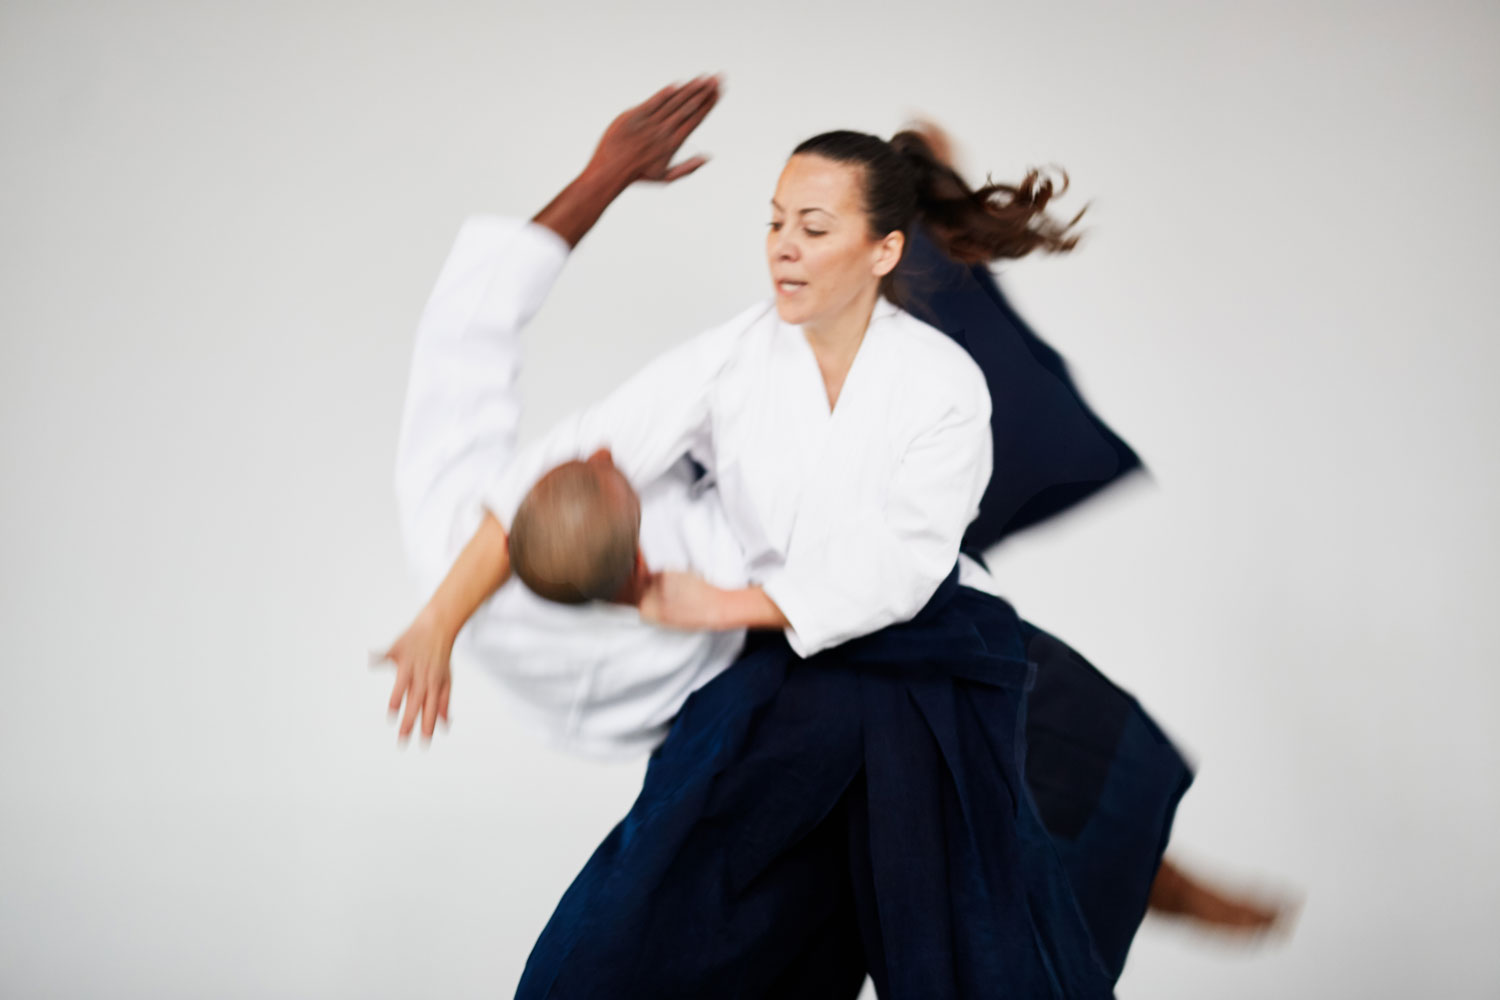 Instructor Maria Ferraro performs an aikido throw